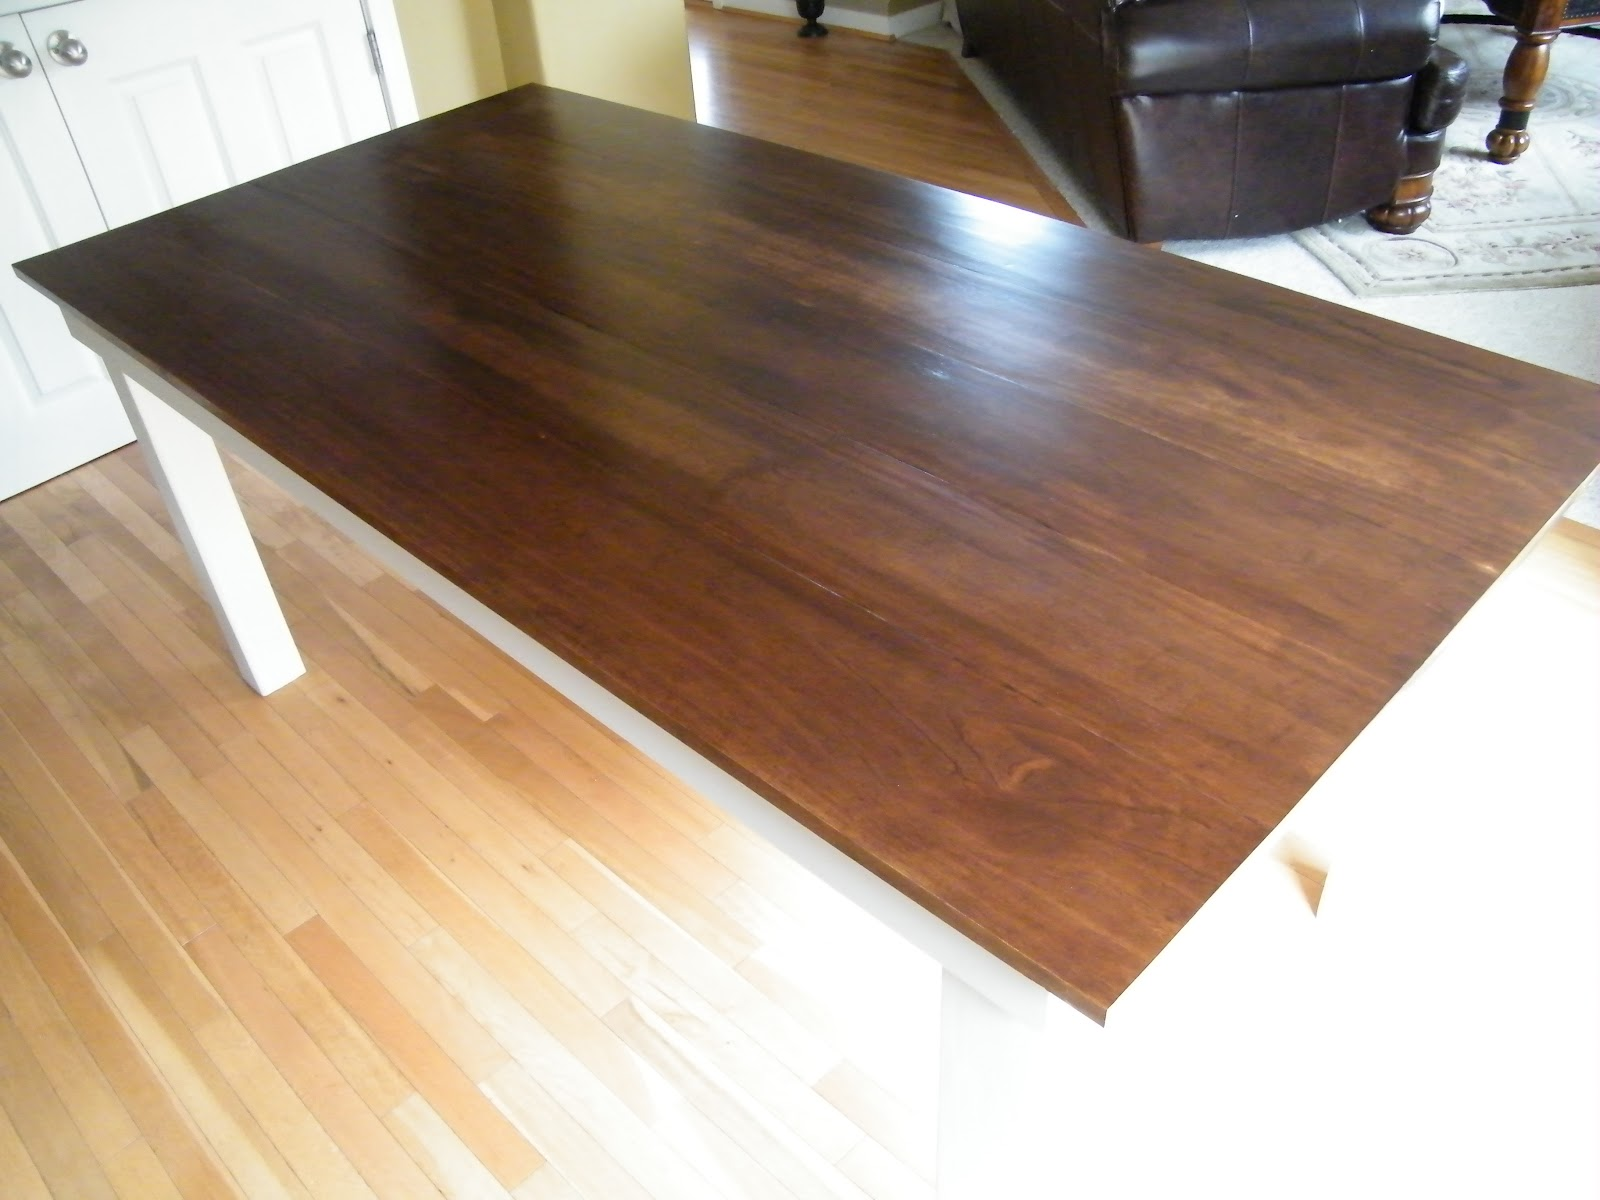 Between The Ana White Rustic Table And The Farm House Table. Our Wood . Full resolution  image, nominally Width 1600 Height 1200 pixels, image with #A16E2A.